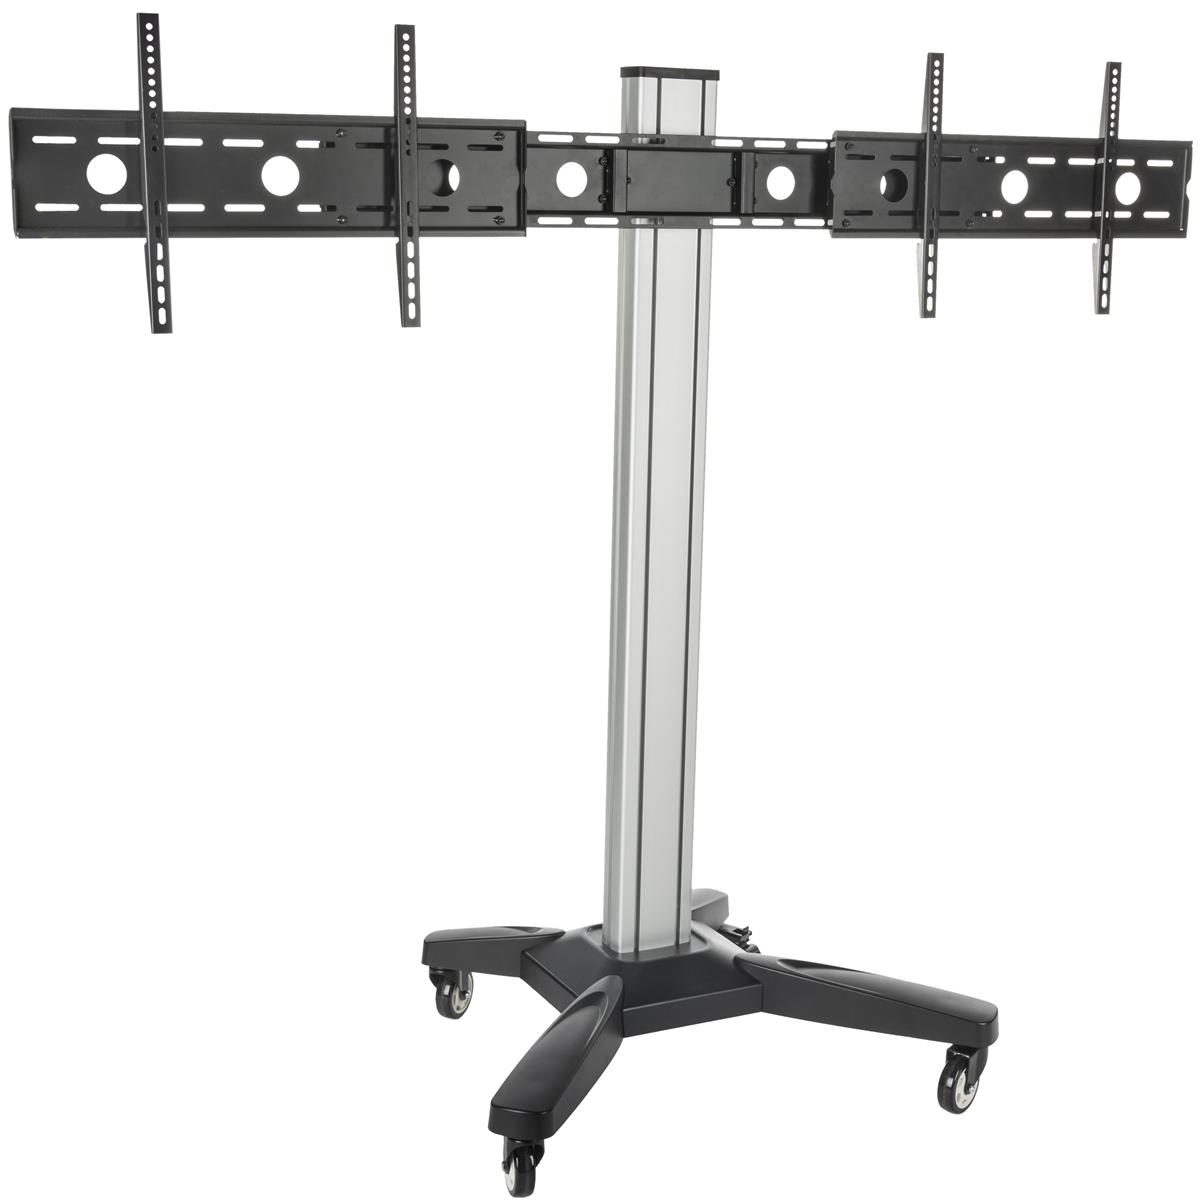 Dual Tv Monitor Stand Mobile Cart W Cable Management